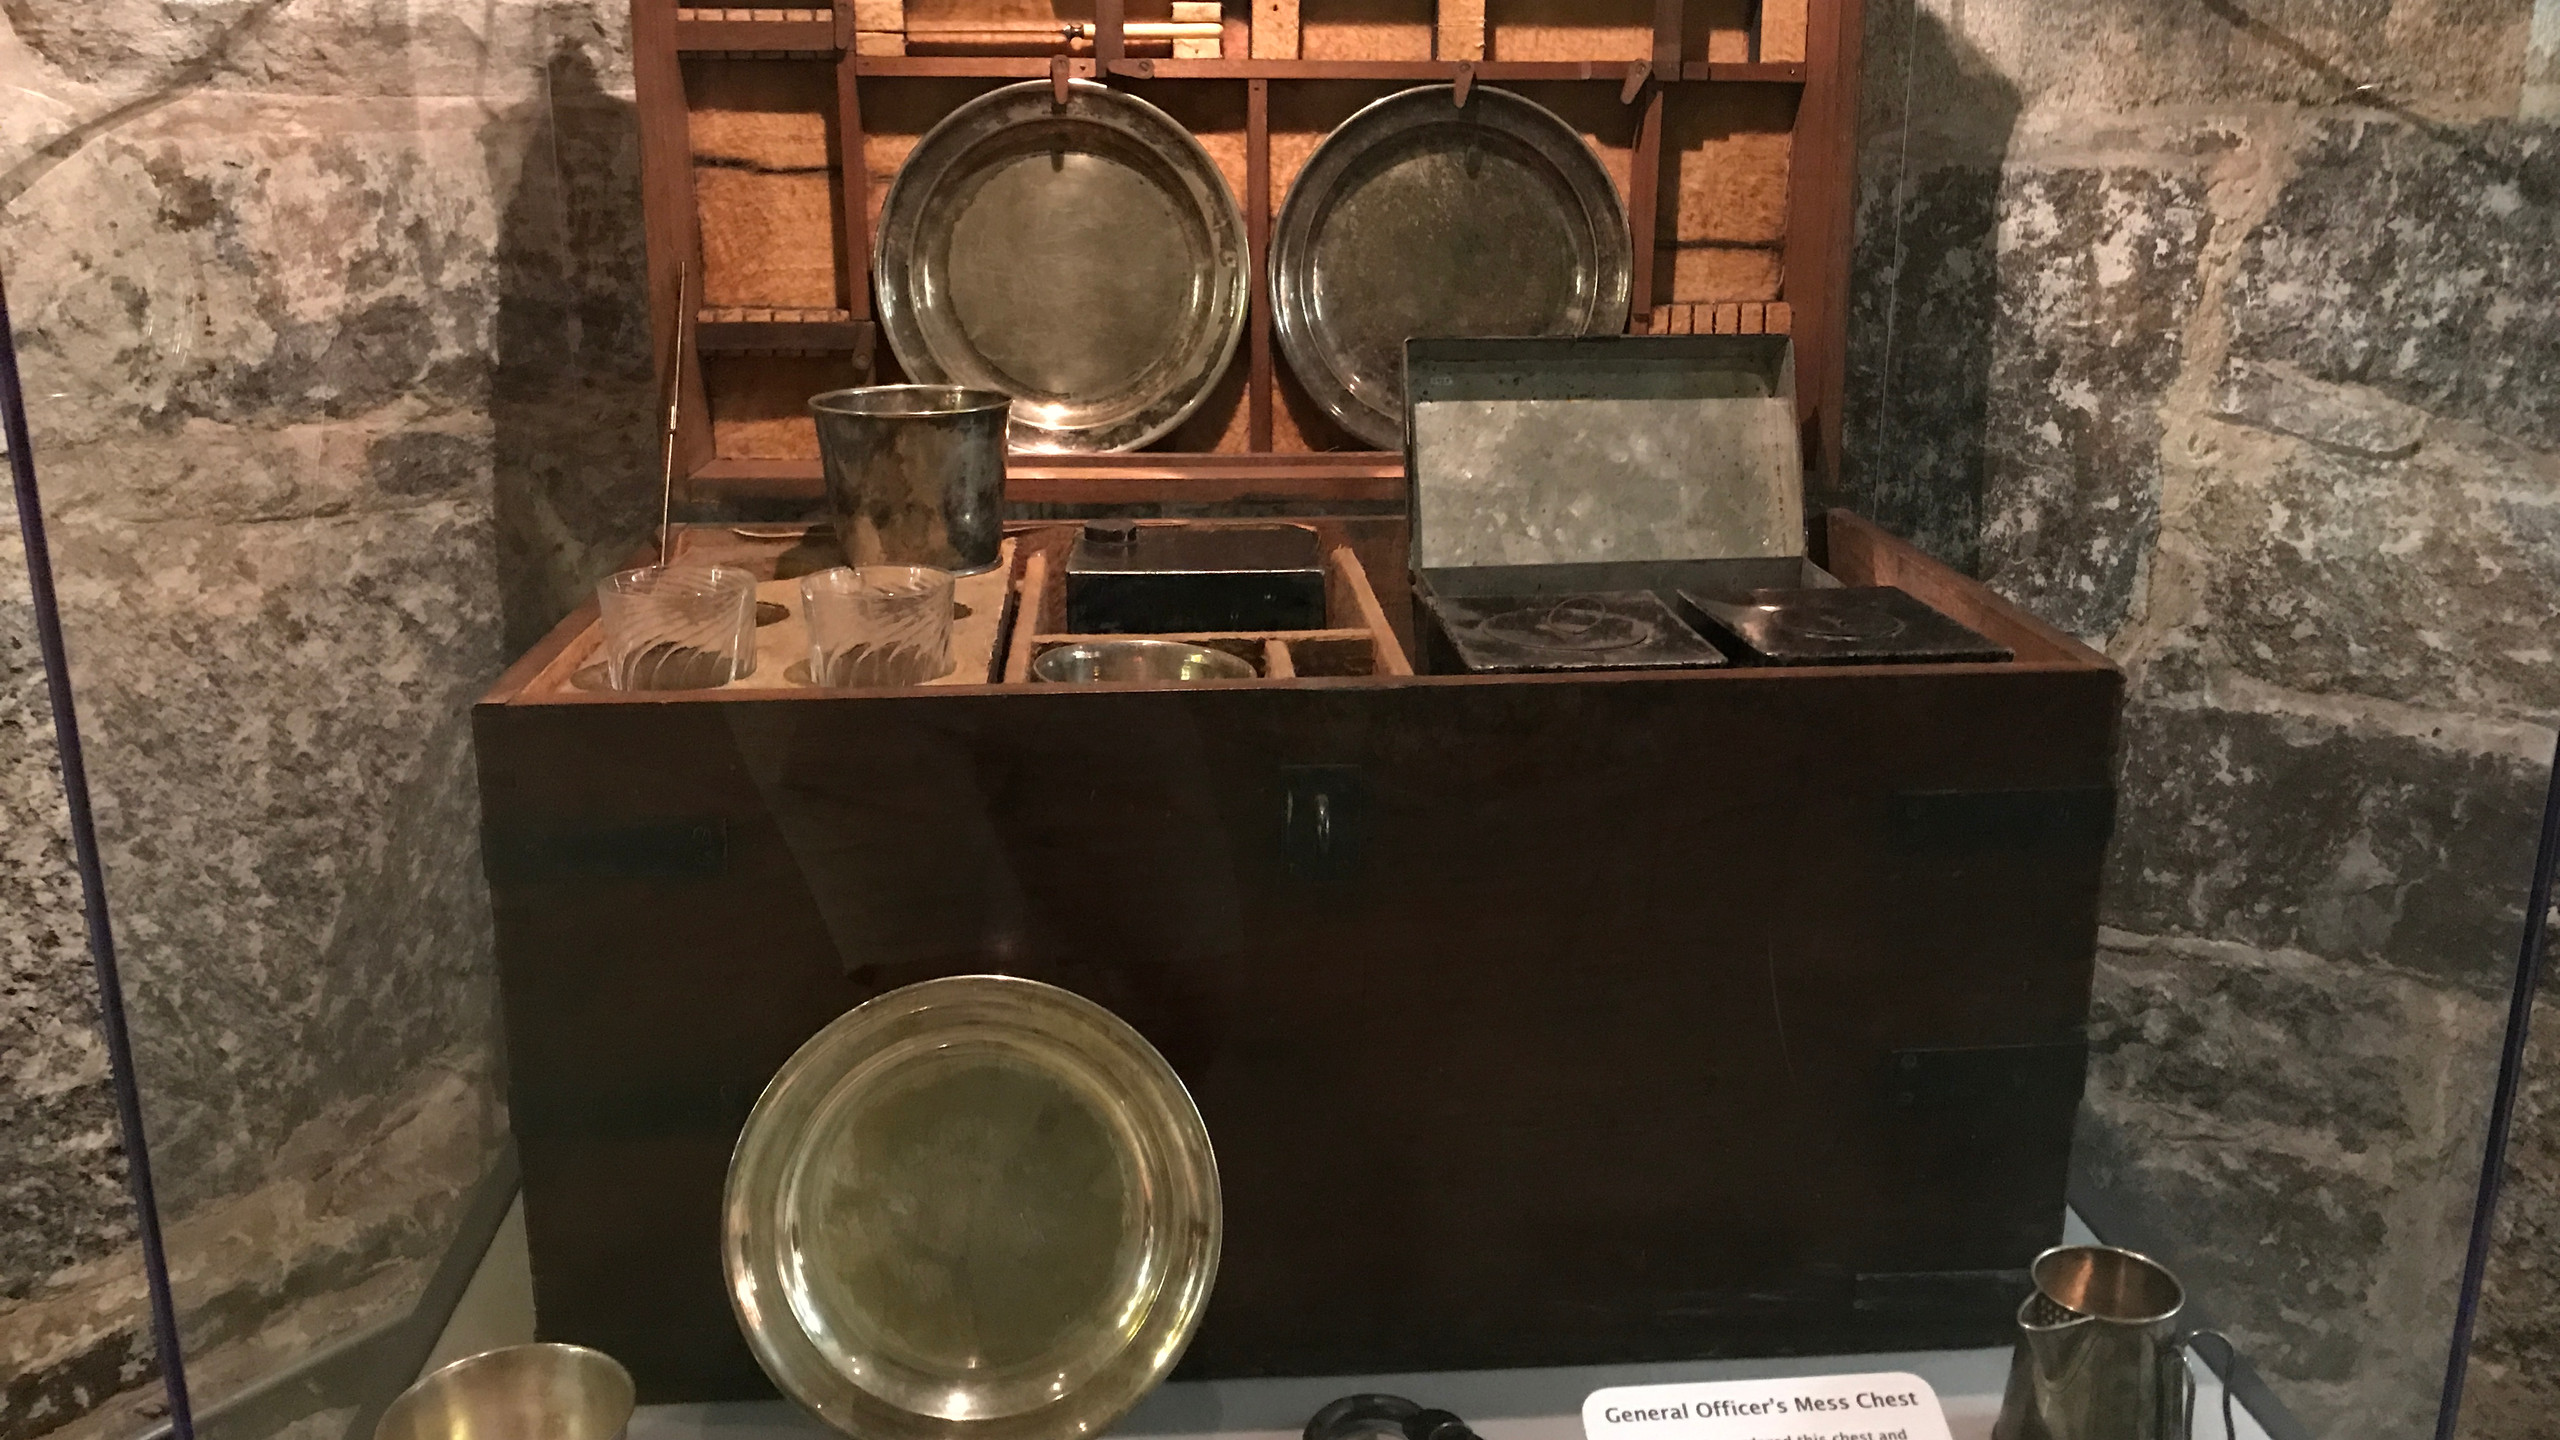 Officer's Mess Chest from Civil War